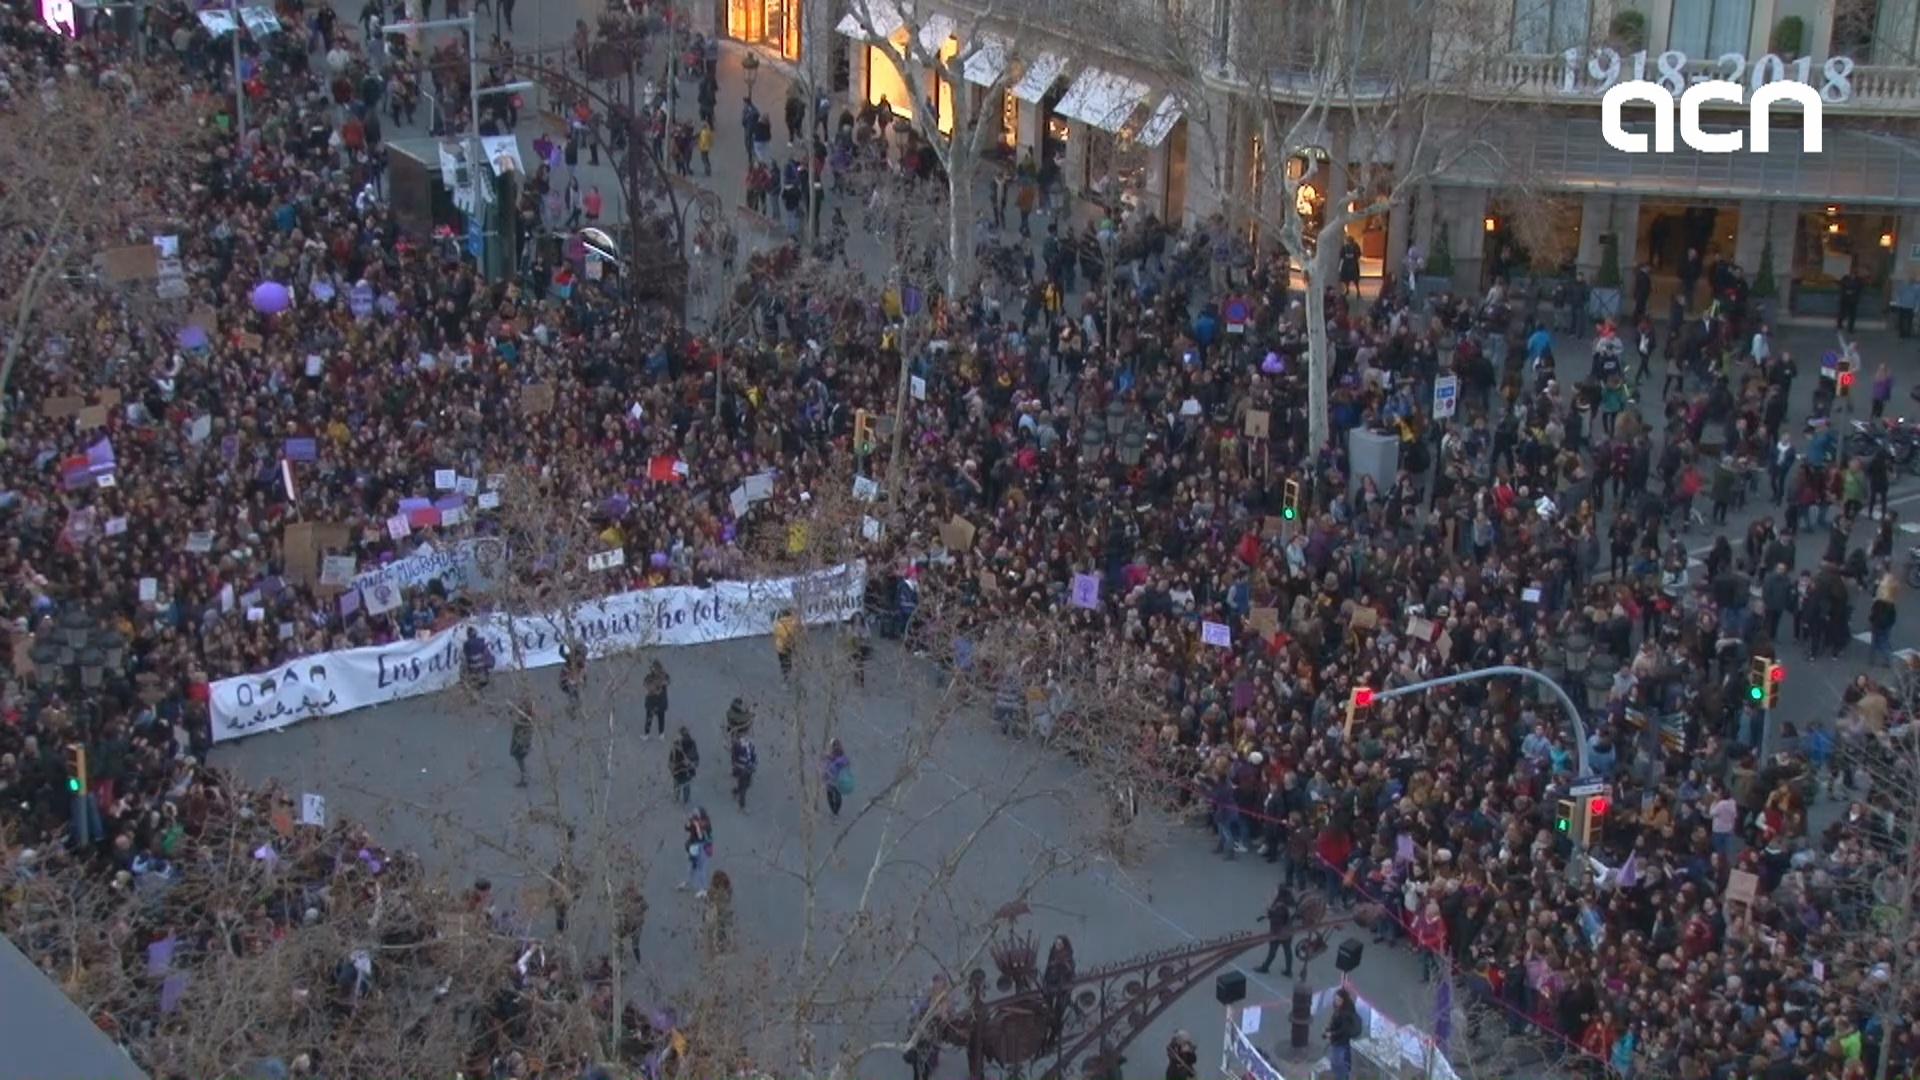 200,000 demonstrate in Barcelona's mass feminist march